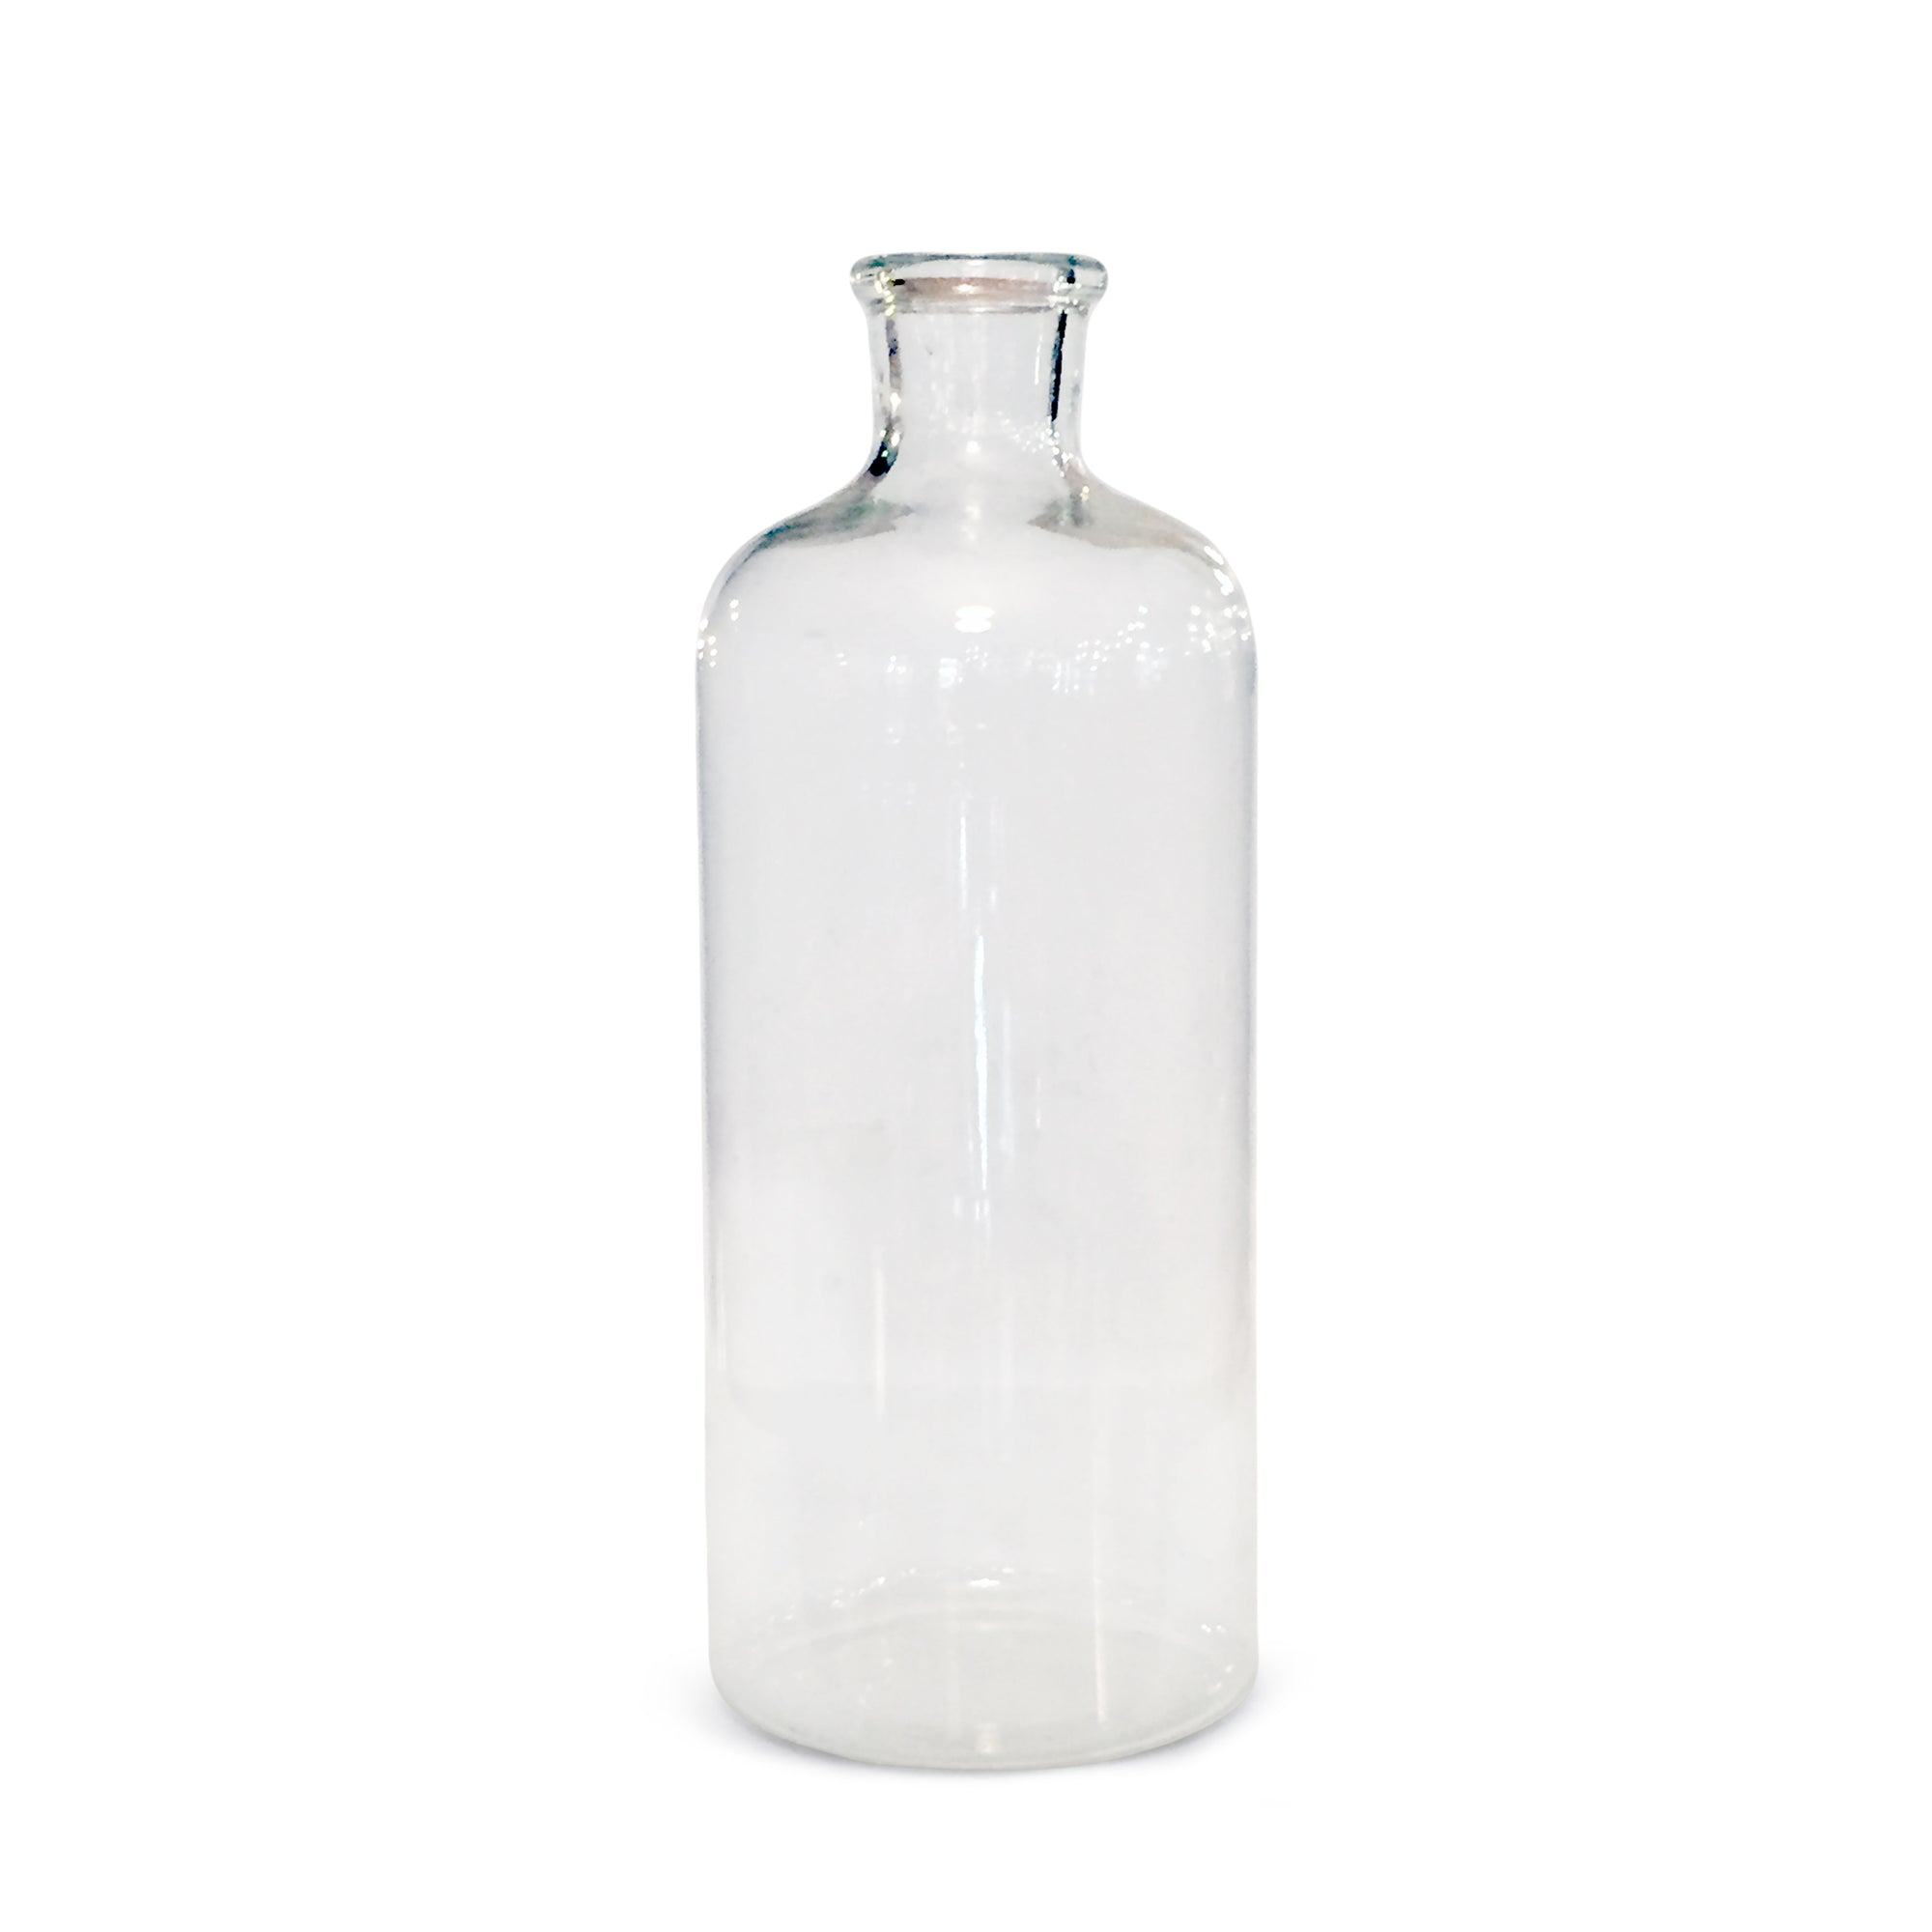 Pyrex Jug - Accessories - ----- WYETH